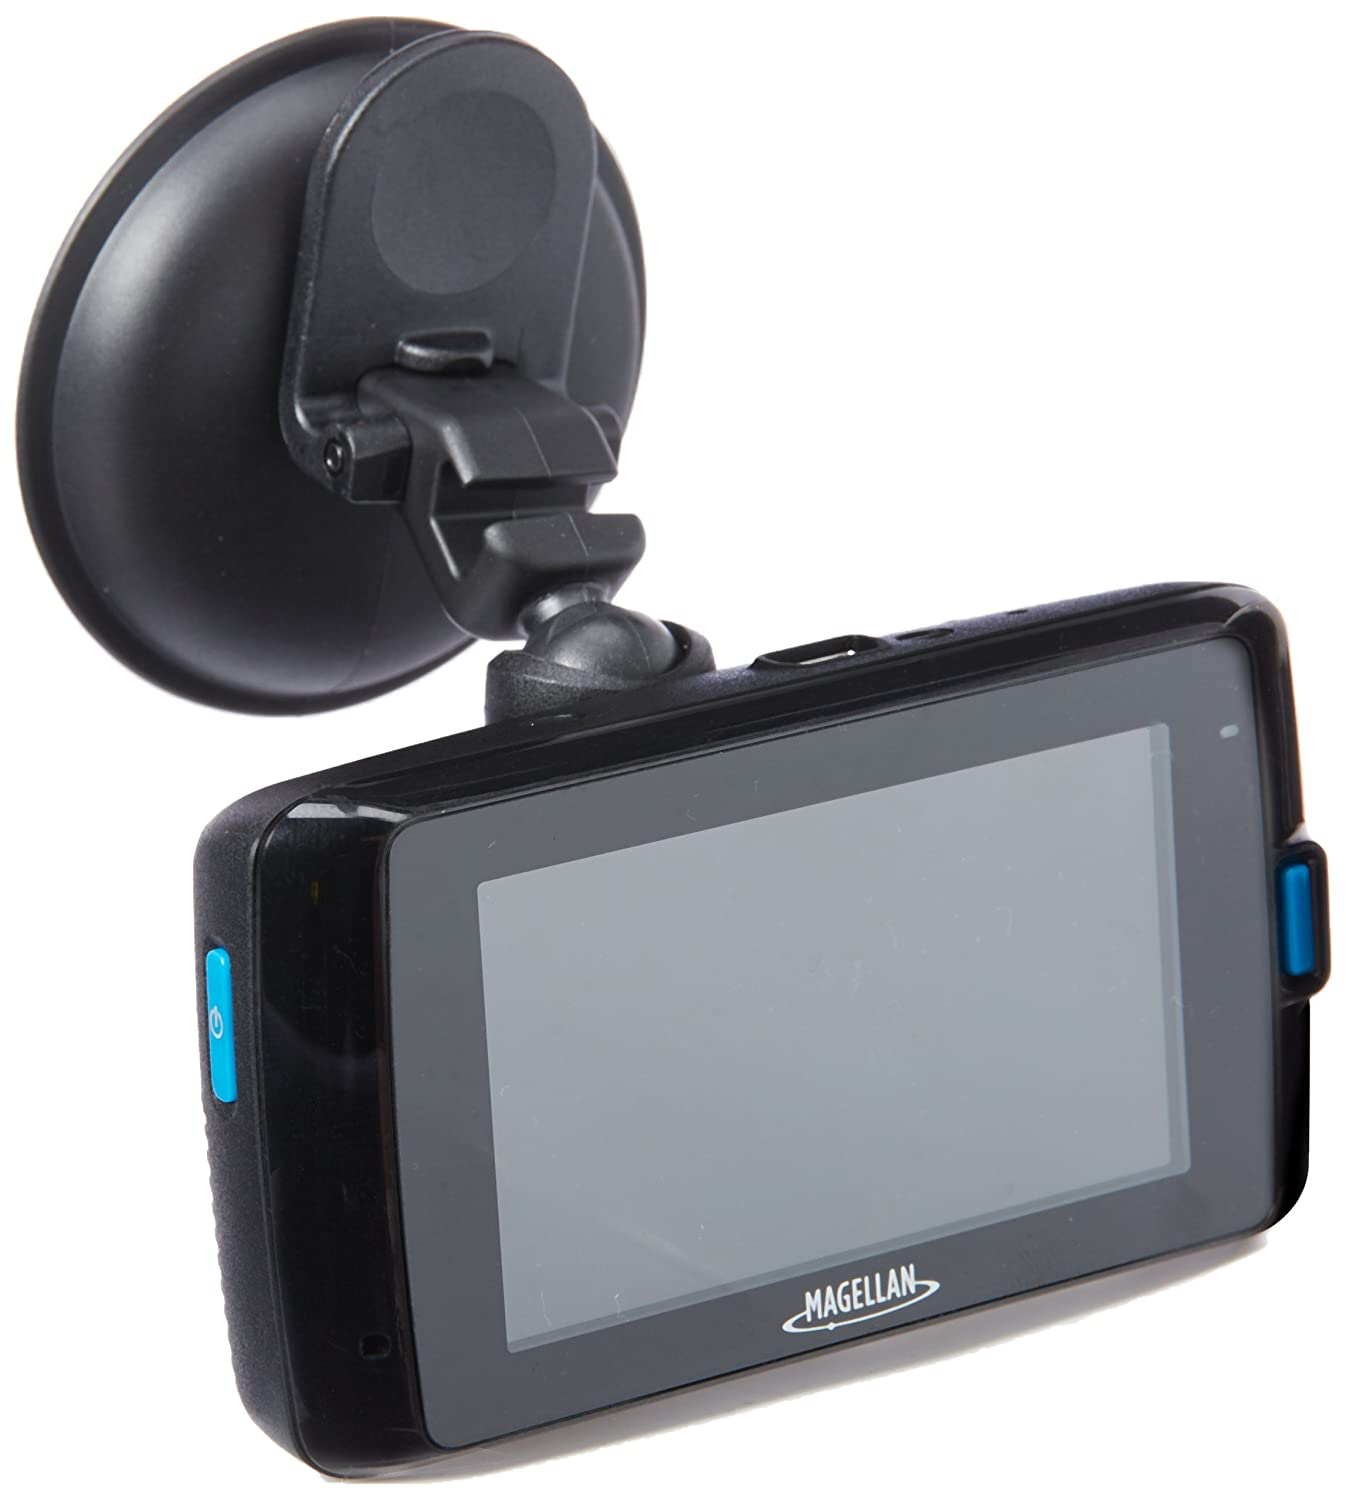 """Magellan 1080P Plus Super HD Dash Camera with Enhanced Low Light Performance, Included 8GB SD Card (Expandable up to 128GB) - 2.7"""" - Black - MiVue 420"""